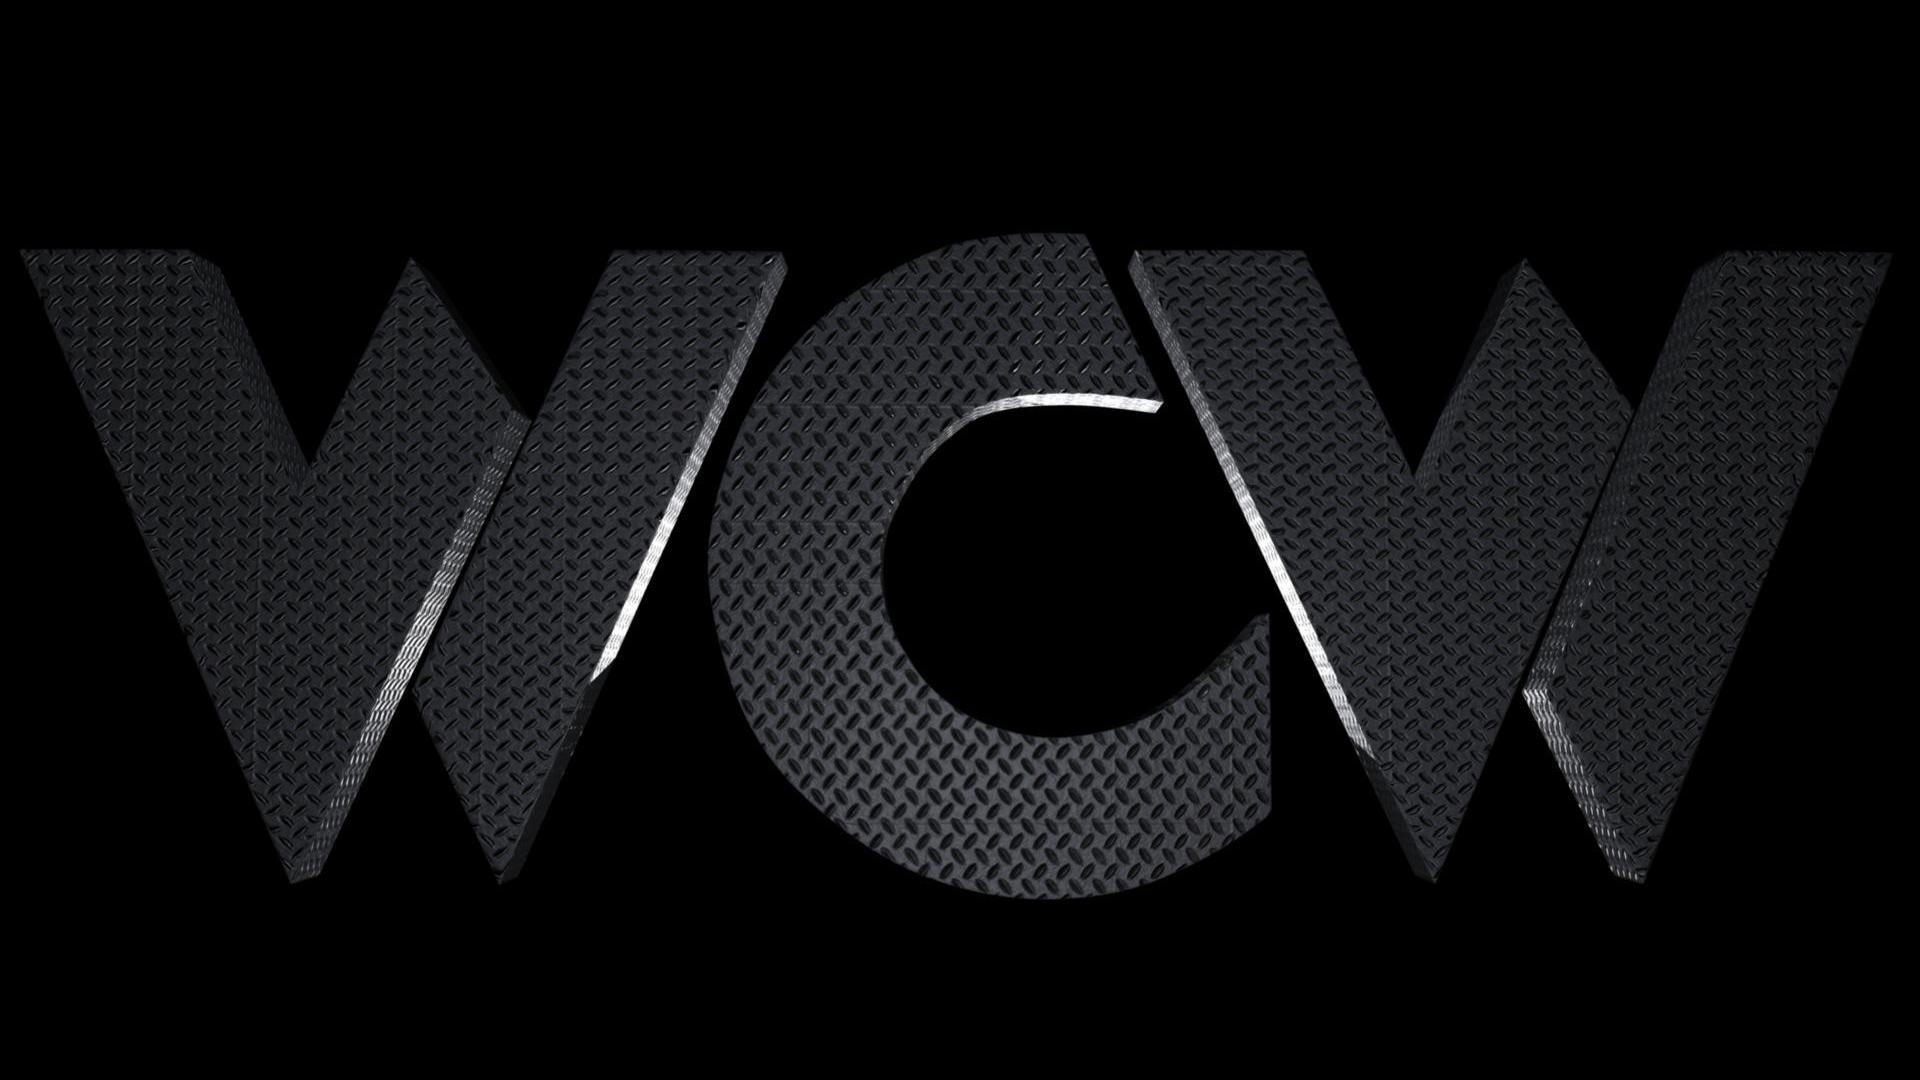 1920x1080 Wcw Wallpapers 7 1920 X 1080 | stmed.net